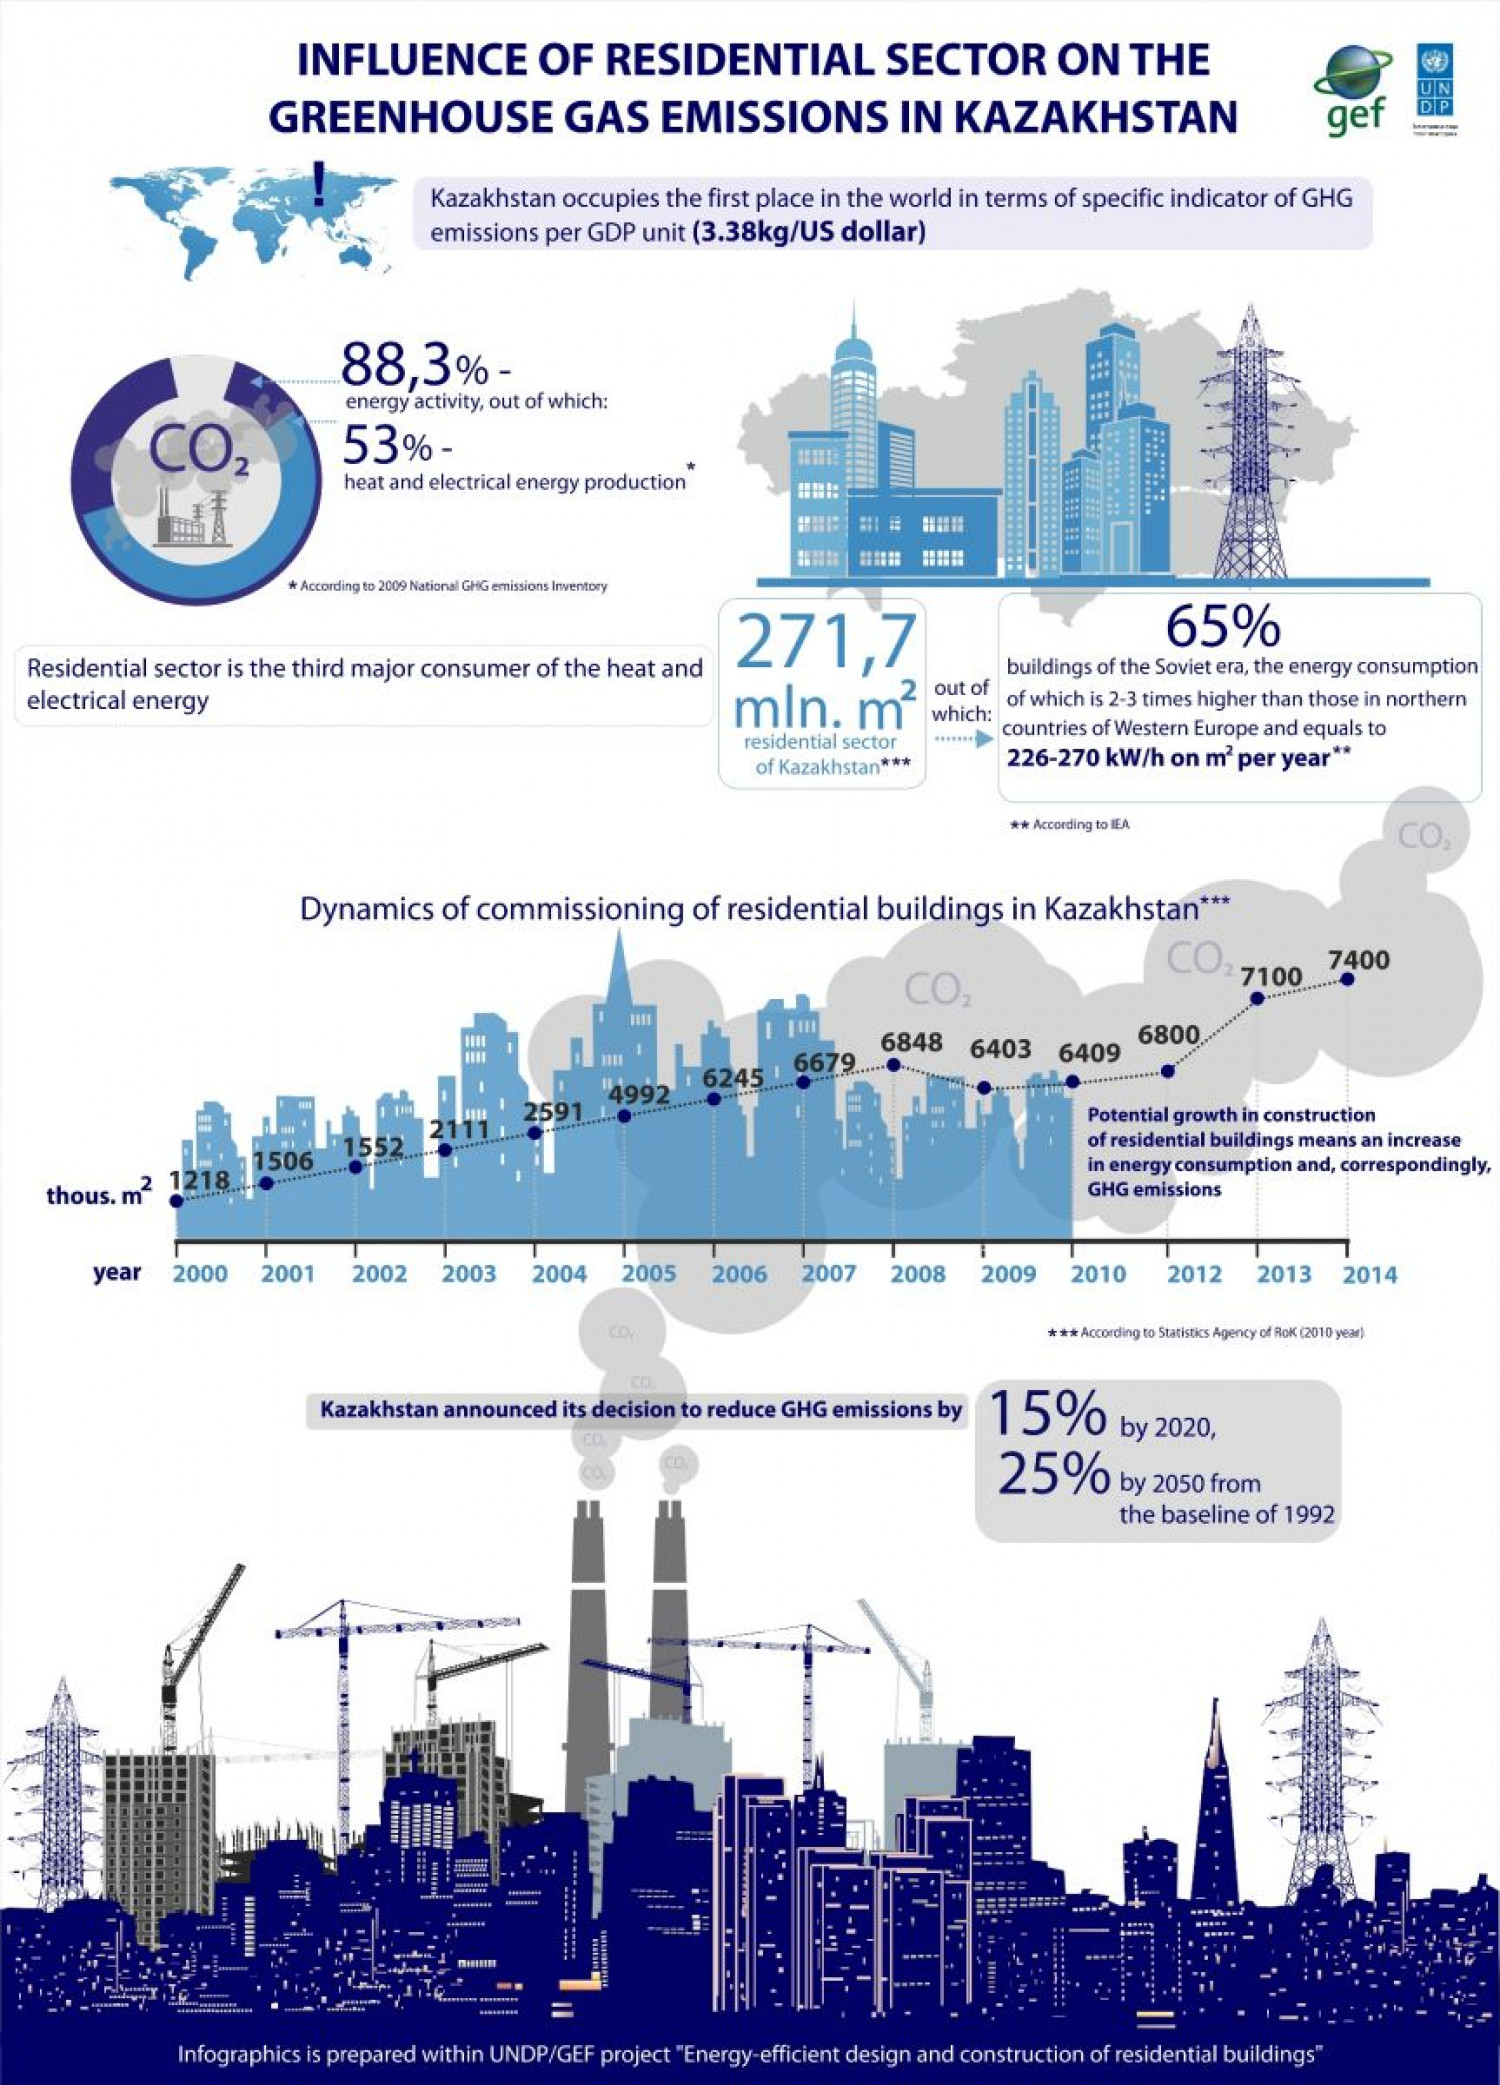 Influence of residential sector on the greenhouse gas emissions in Kazakhstan Infographic